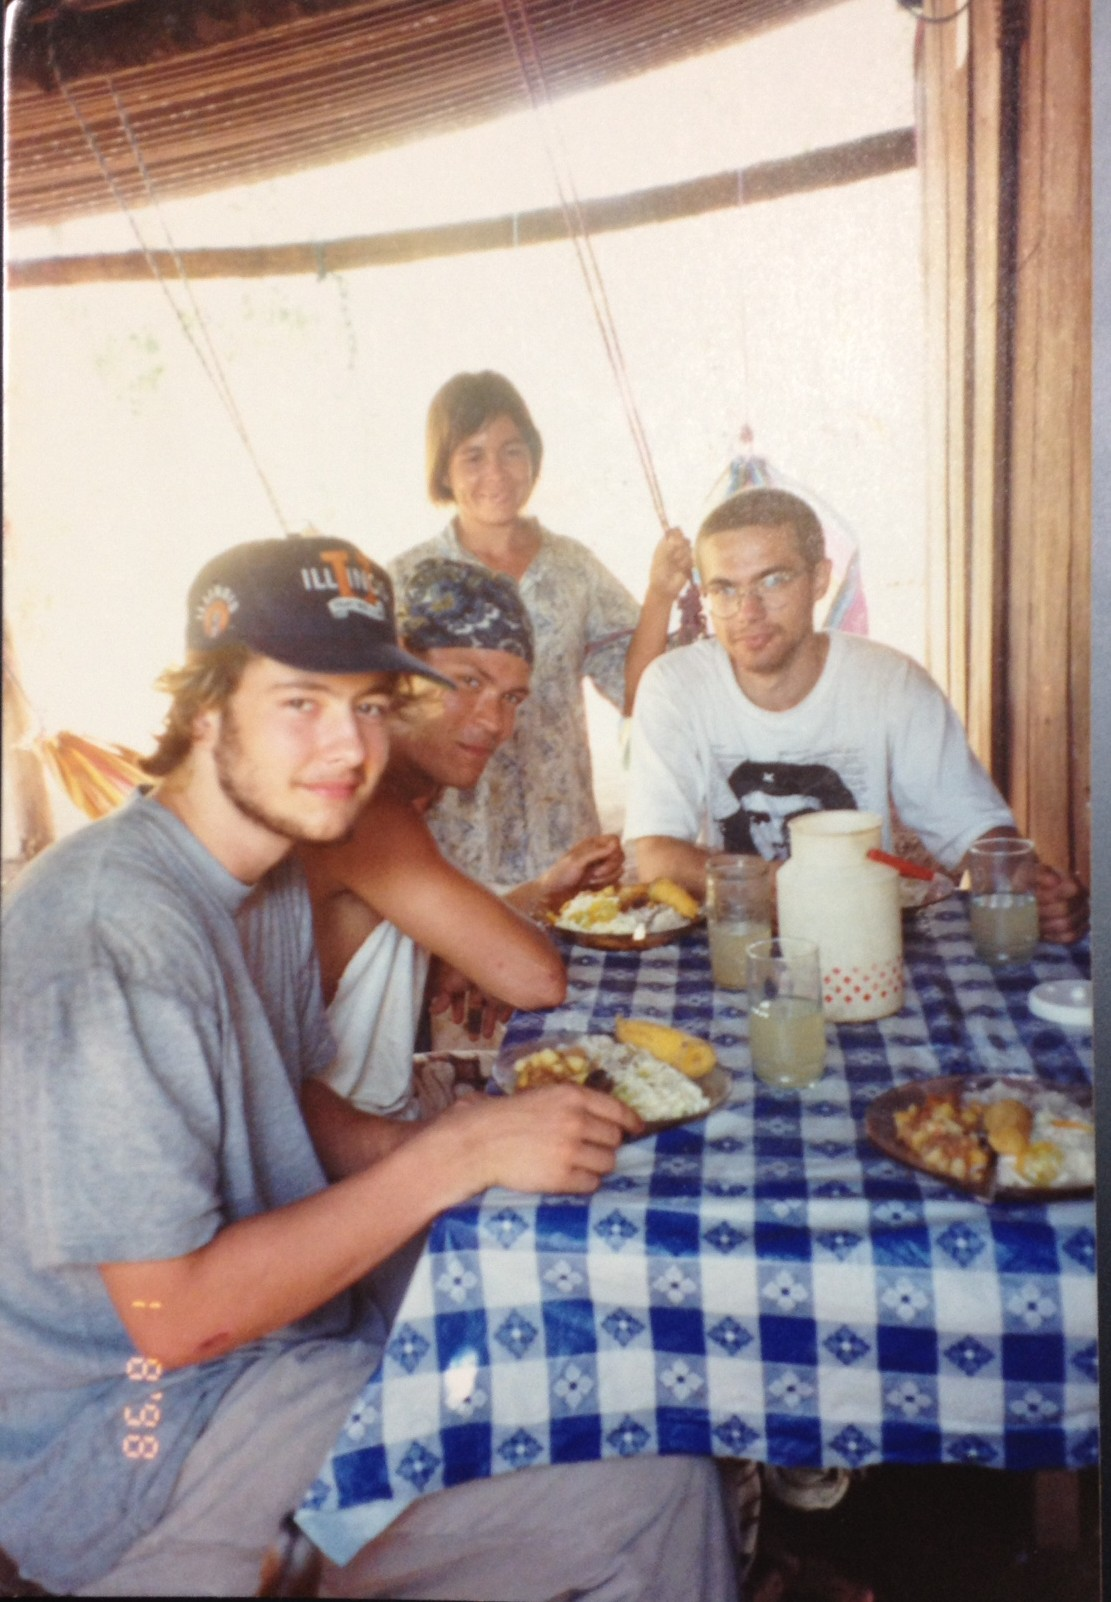 Me, Sam and Exan having lunch in Nicaragua